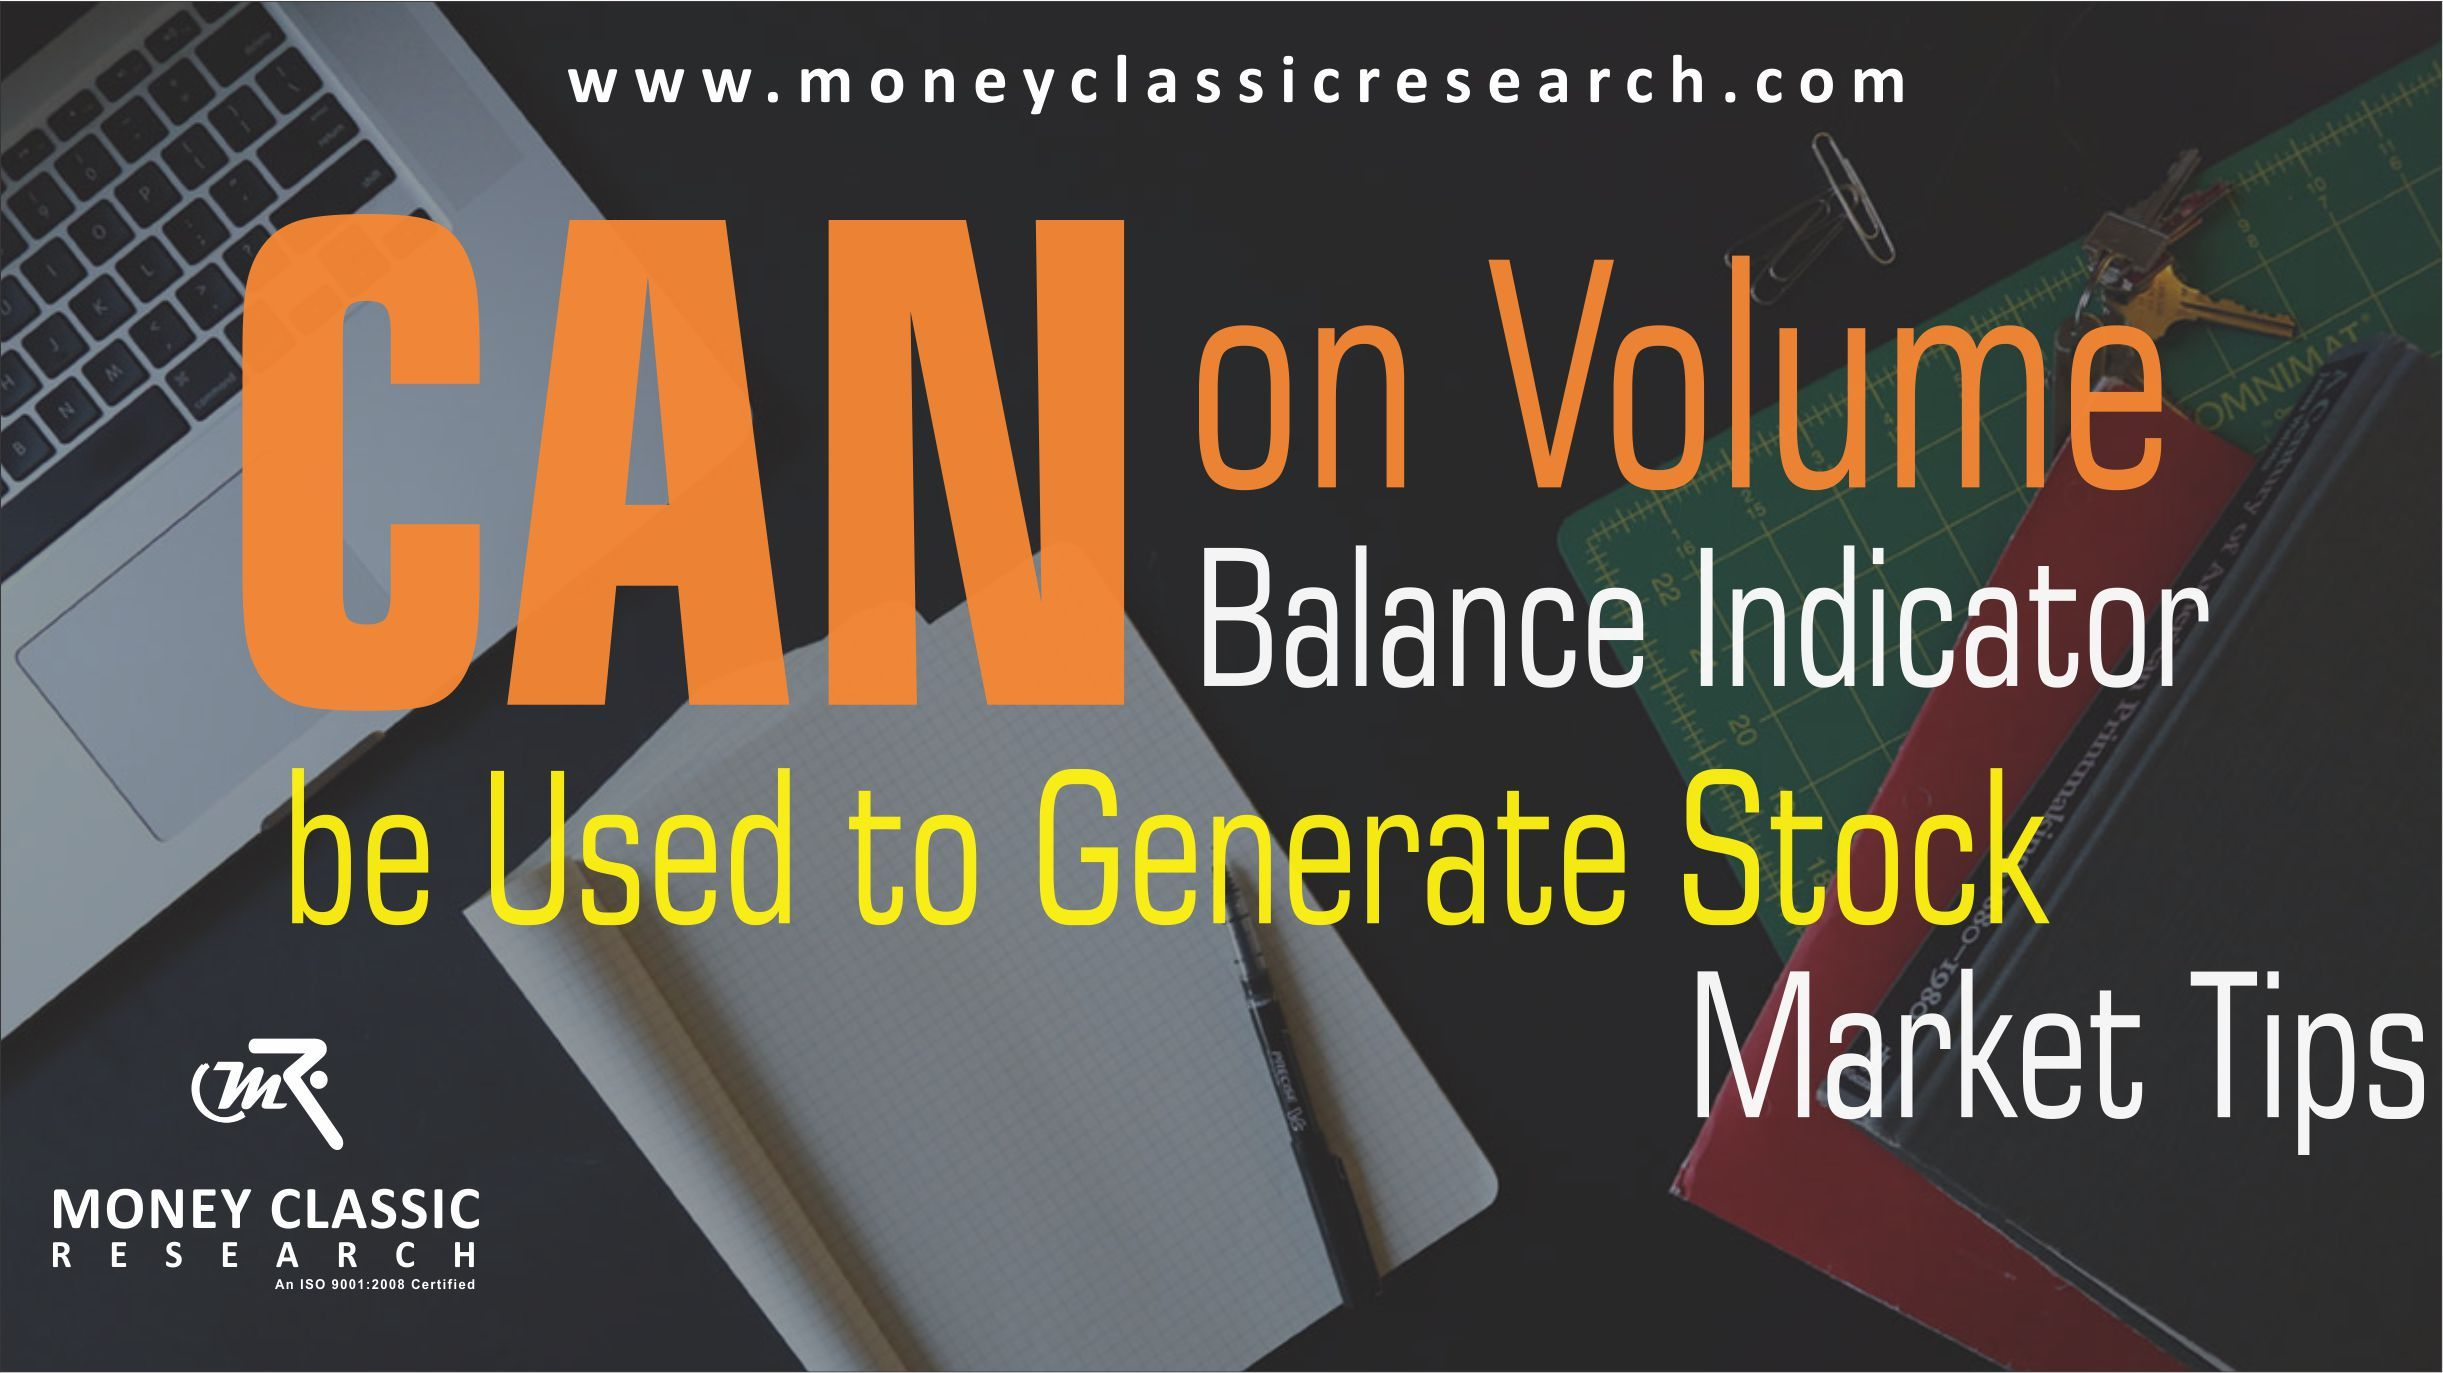 Joe Granville Developed On Balance Volume Indicator In The 1960s